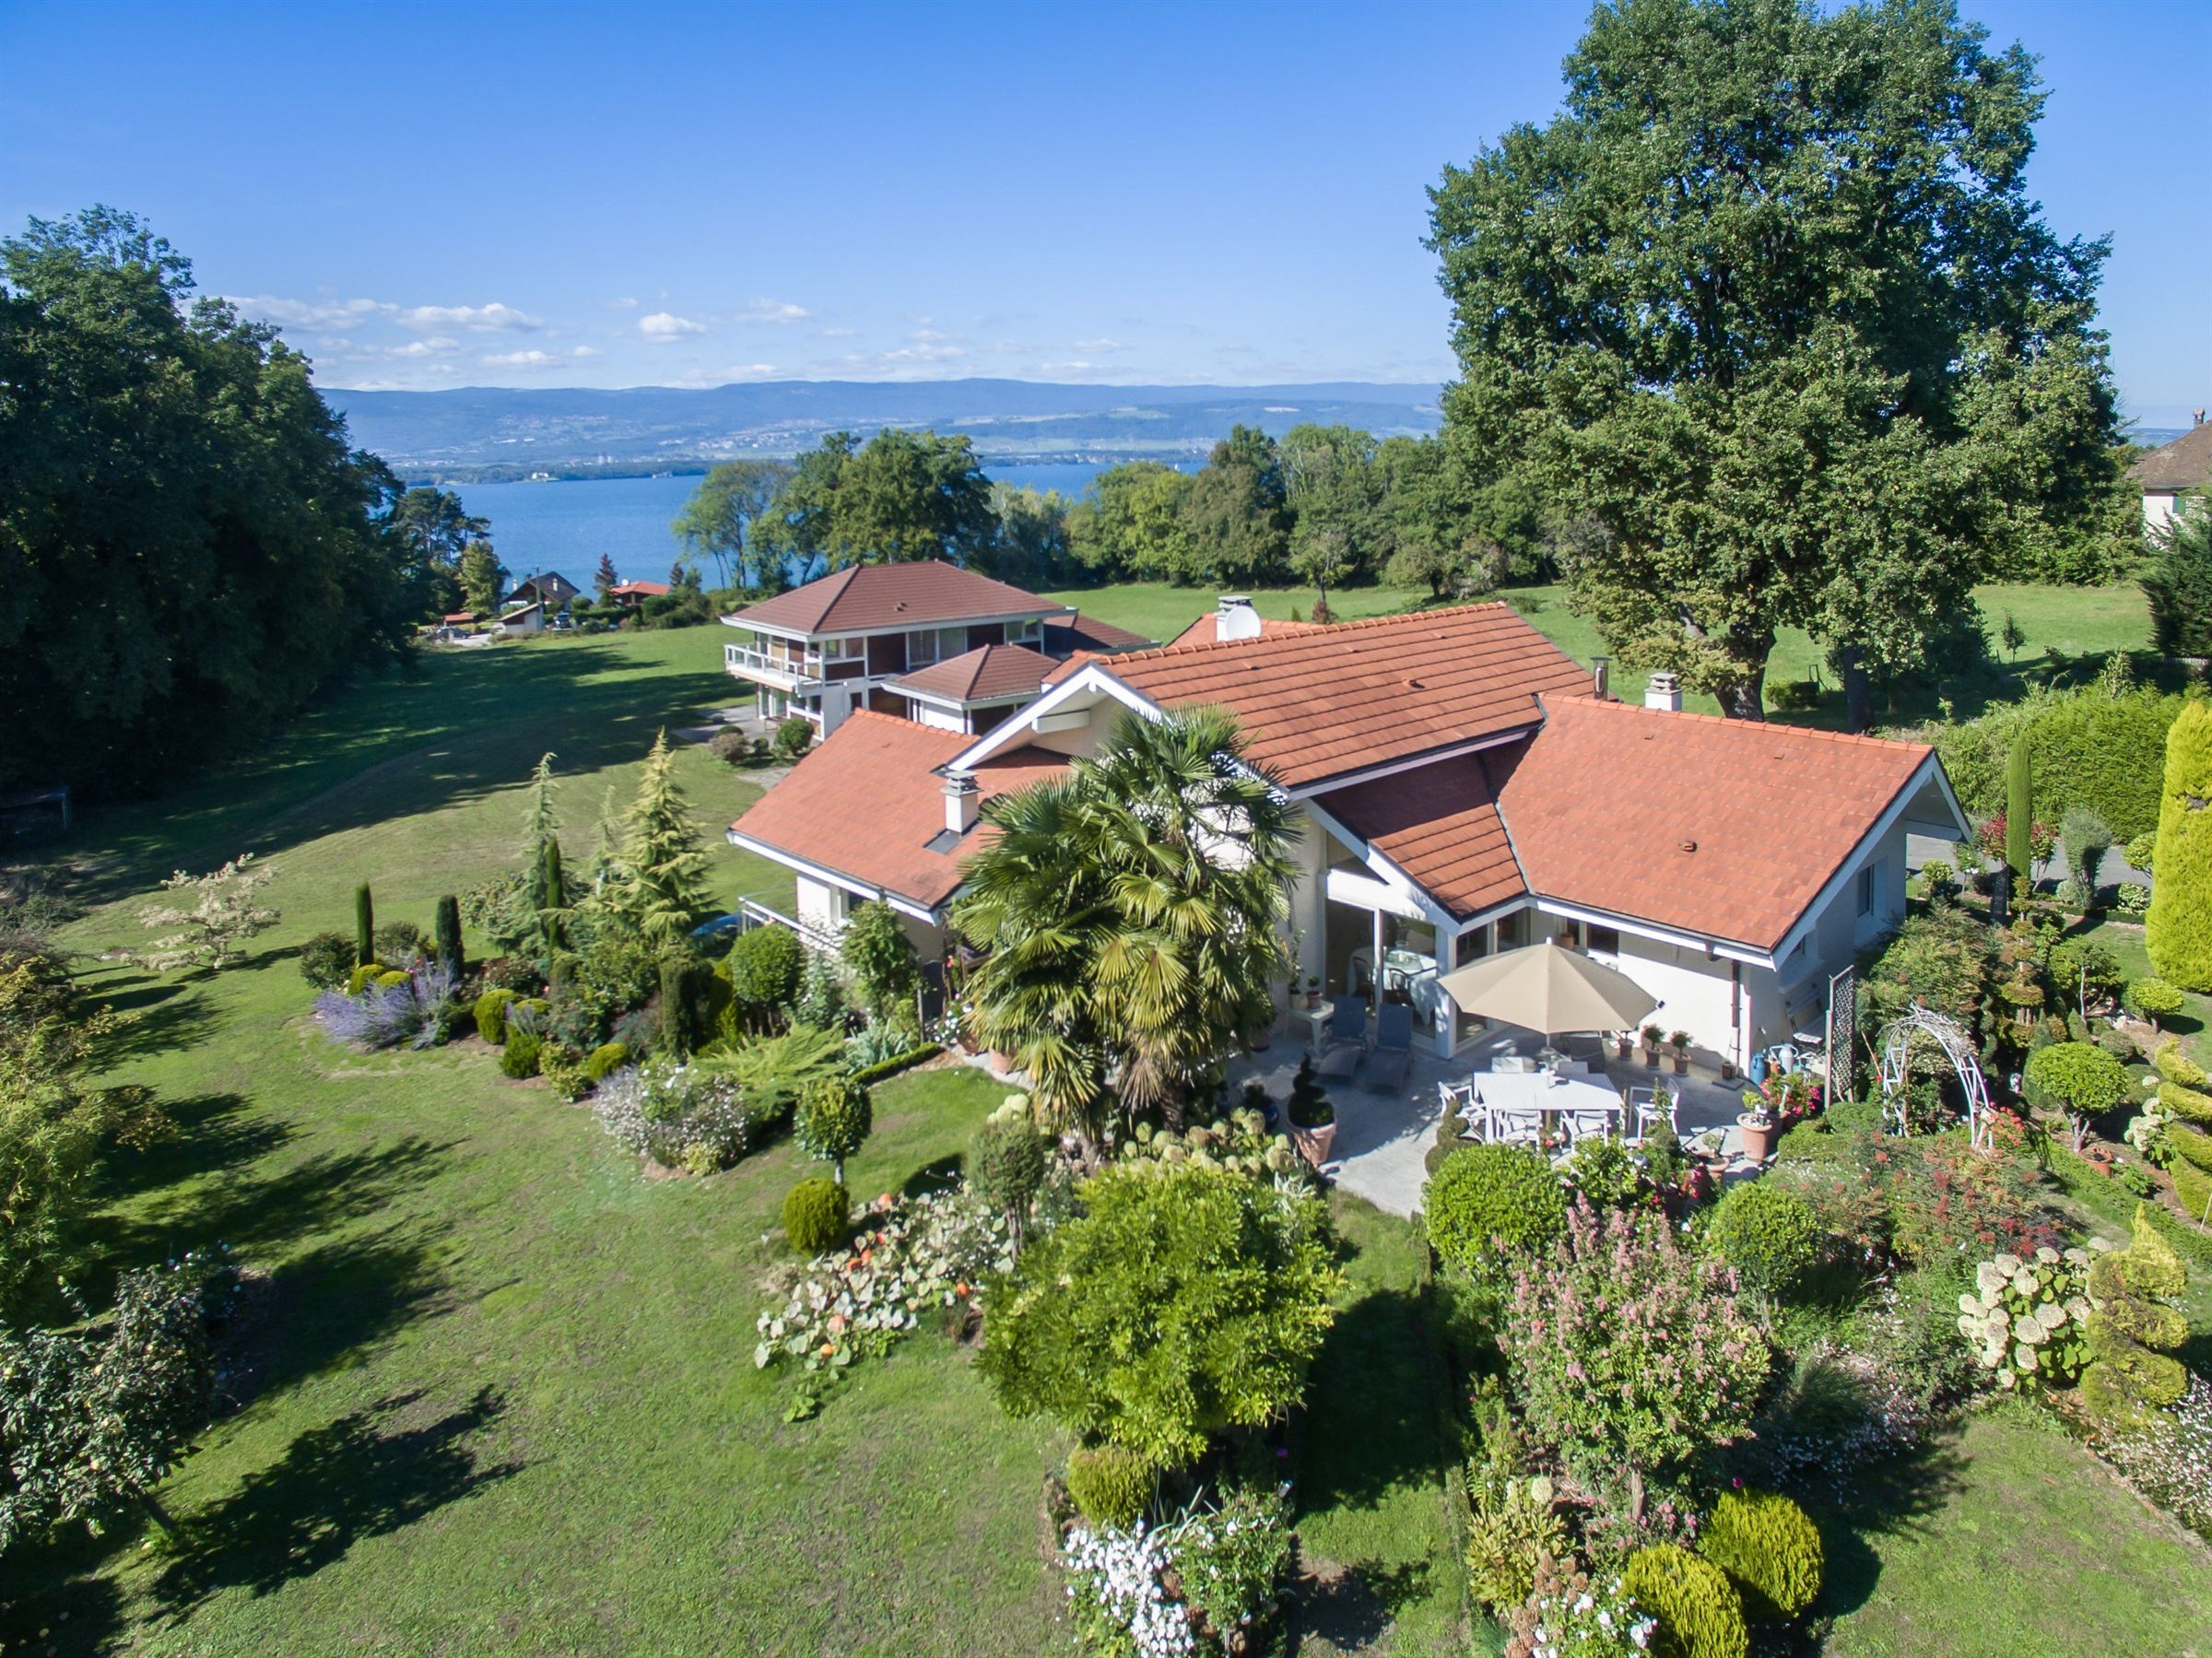 Single Family Home for Sale at Yvoire : Villa nice lake view Yvoire, Haute Savoie 74140 France